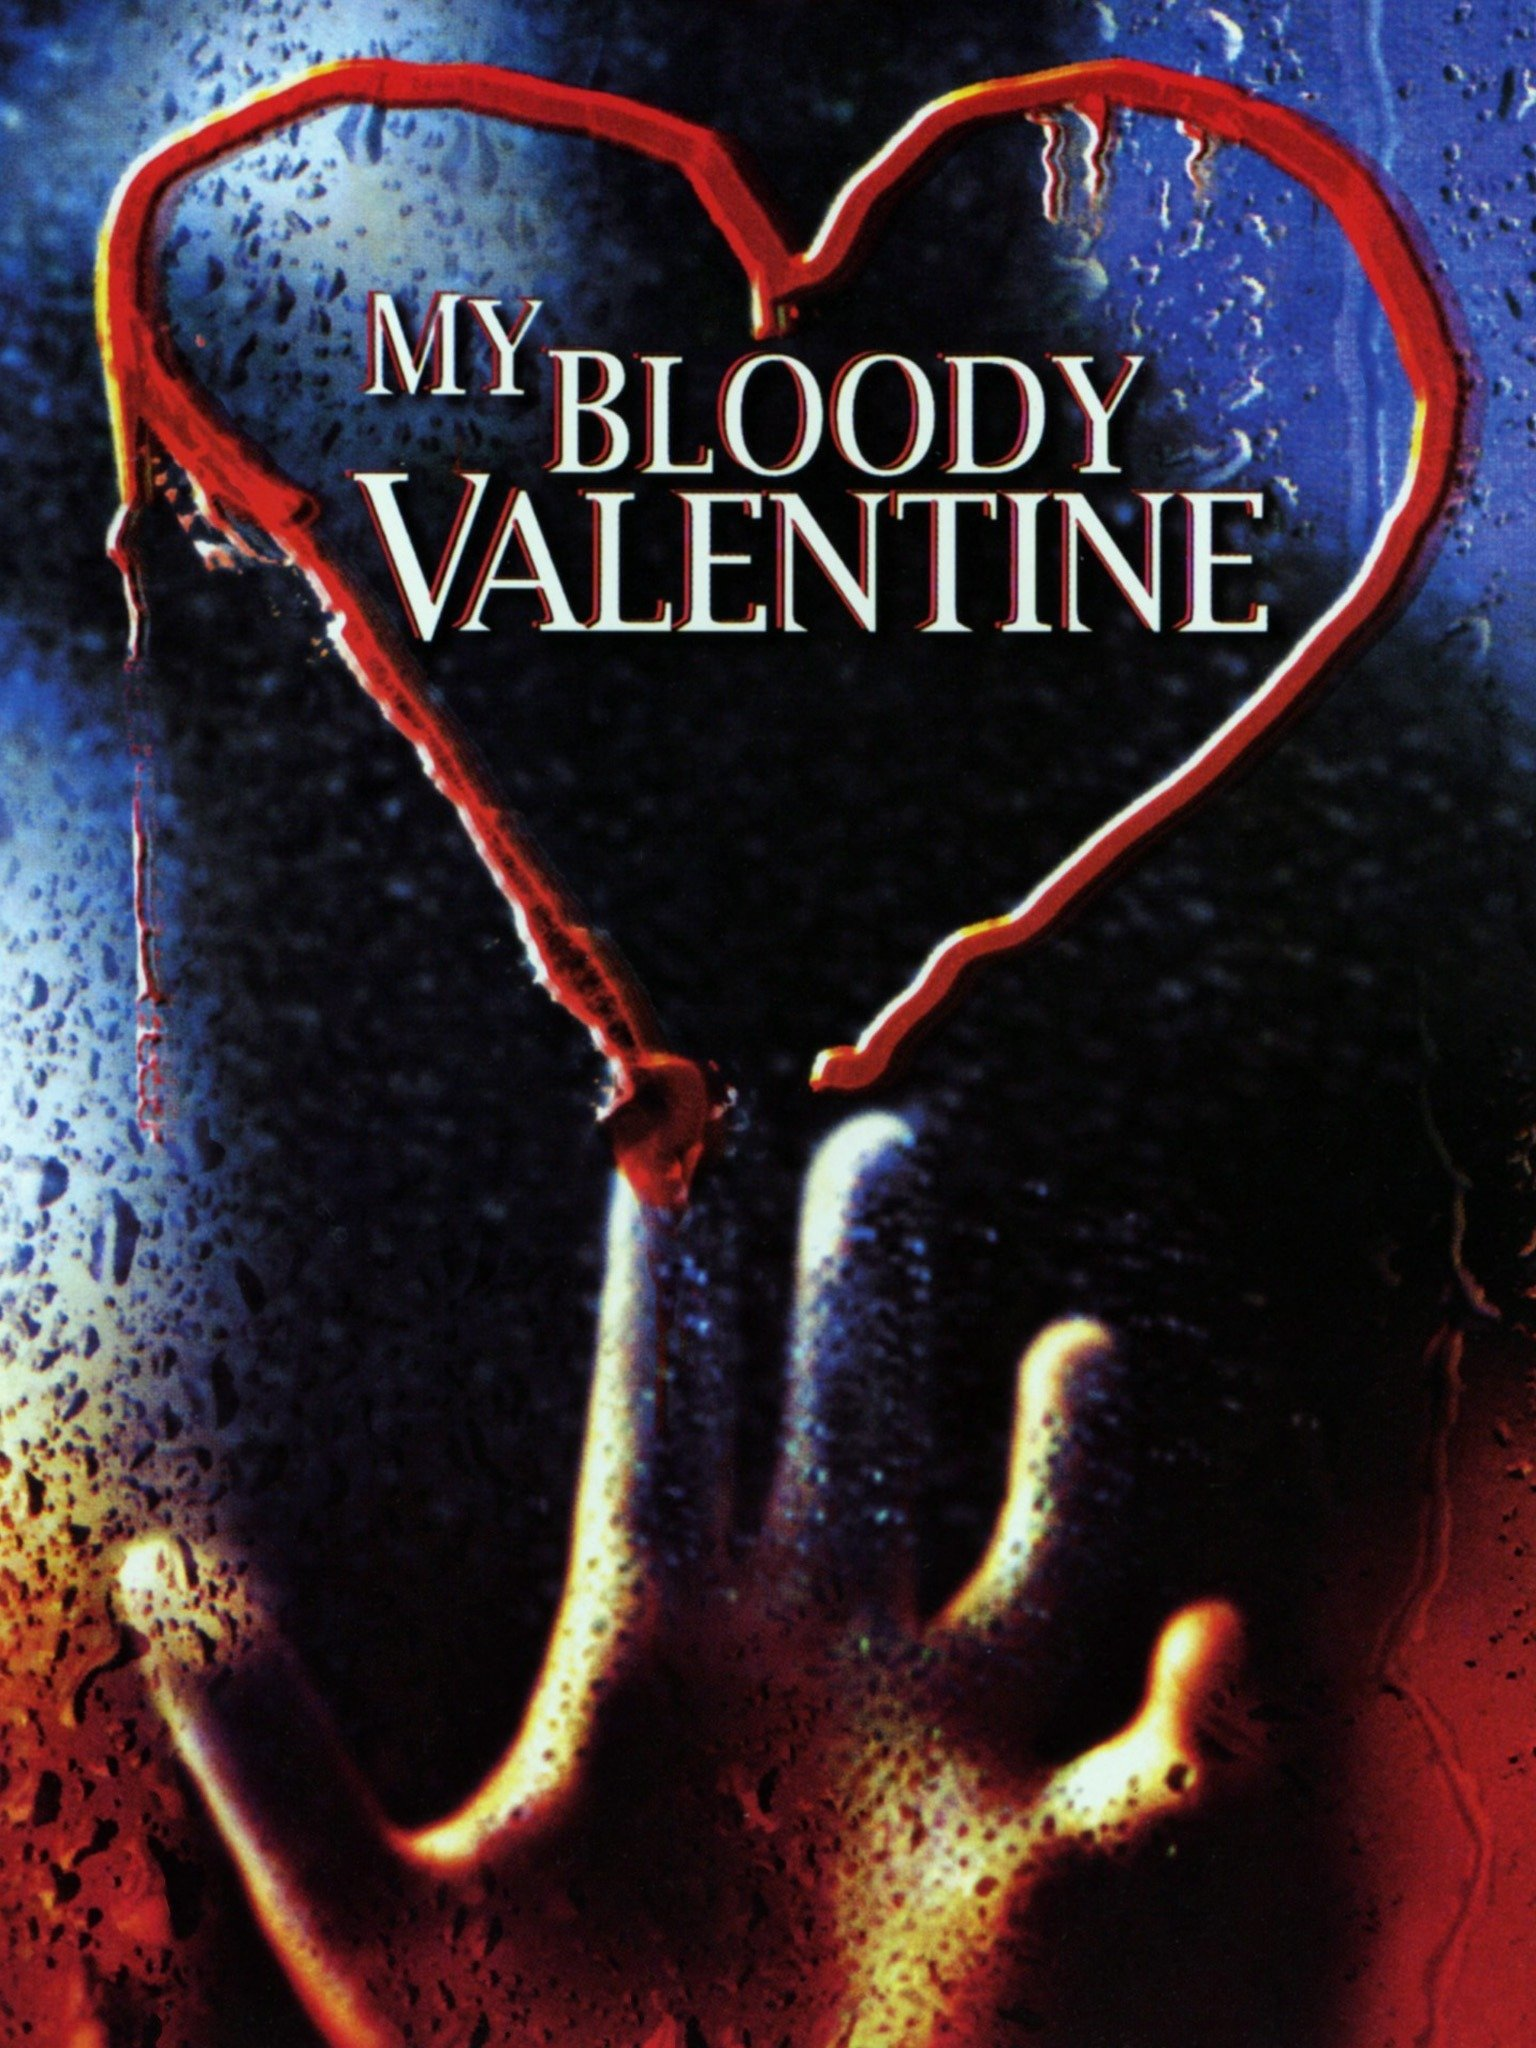 My Bloody Valentine 1981 Rotten Tomatoes